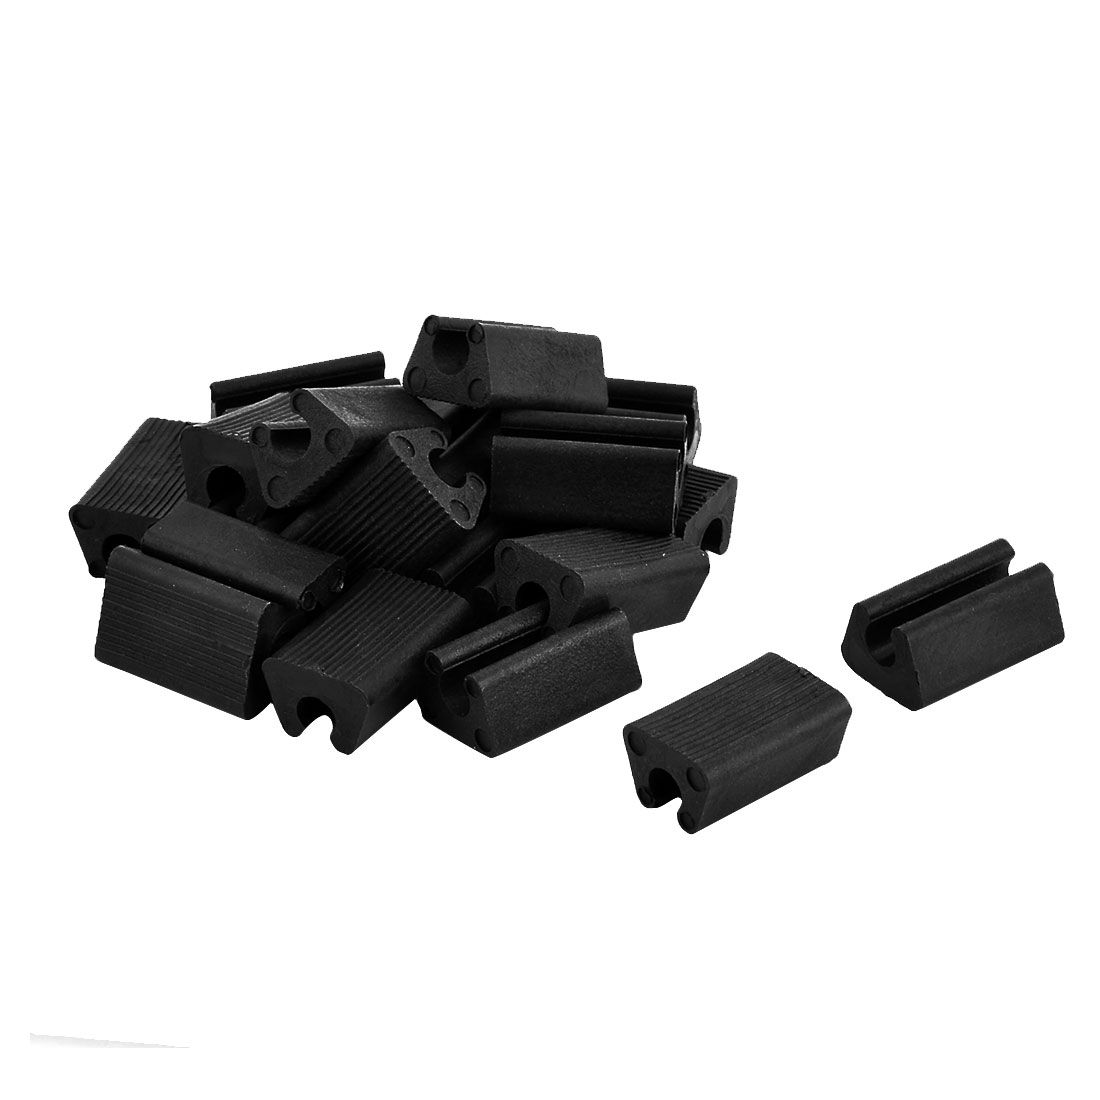 Furniture Feet Plastic Rectangle Shaped Non-Slip Table Legs Tip Black 20pcs